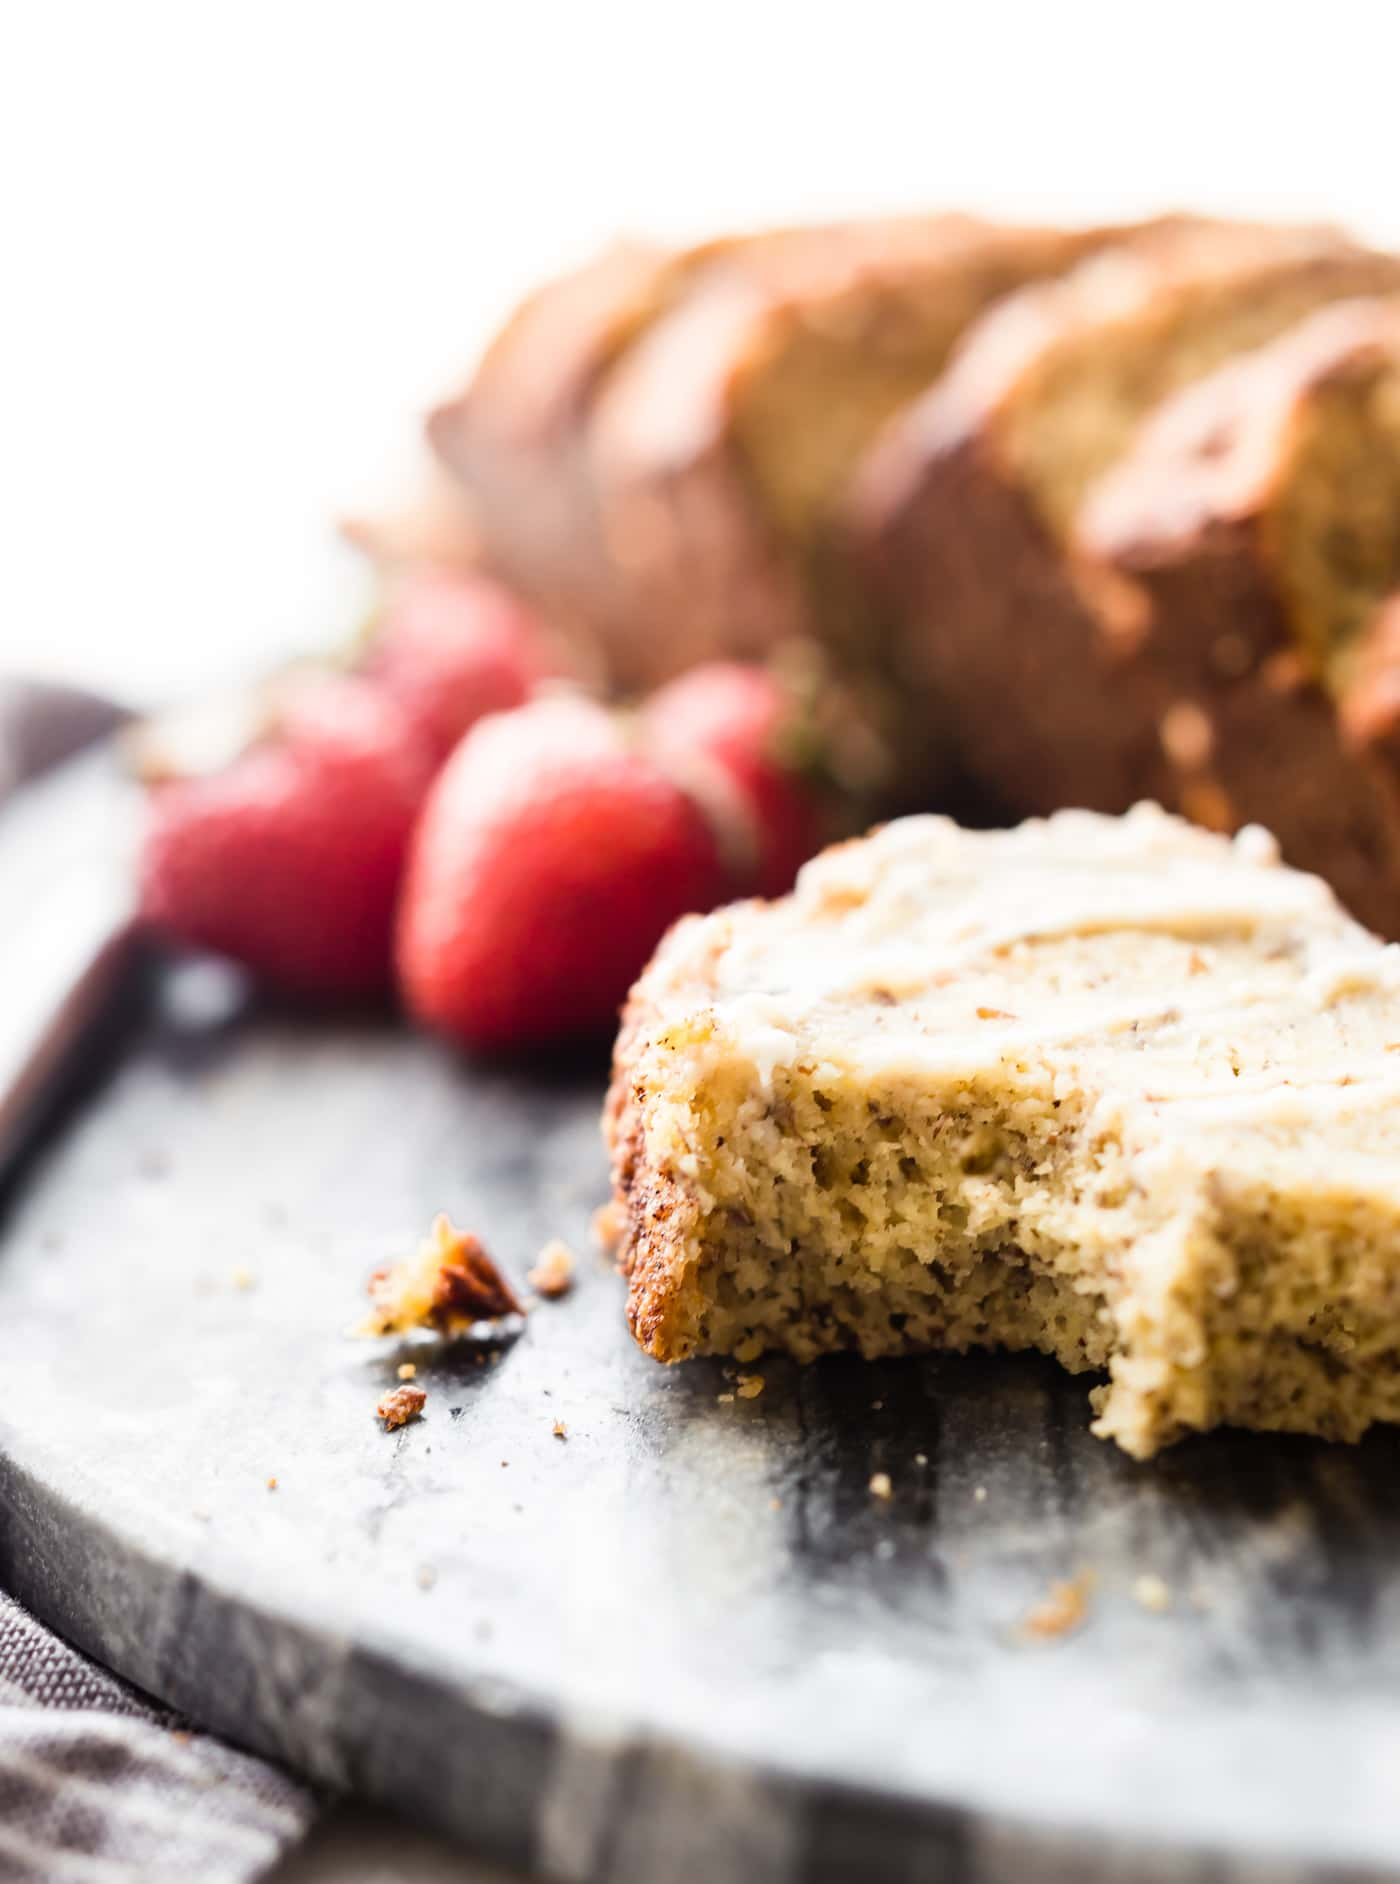 This simple and delicious cinnamon almond flour bread is a versatile paleo bread recipe you're whole family will love! Made with few ingredients; almond flour, flax seed, cinnamon, and eggs to name a few. A nourishing wholesome bread for breakfast or snacking.